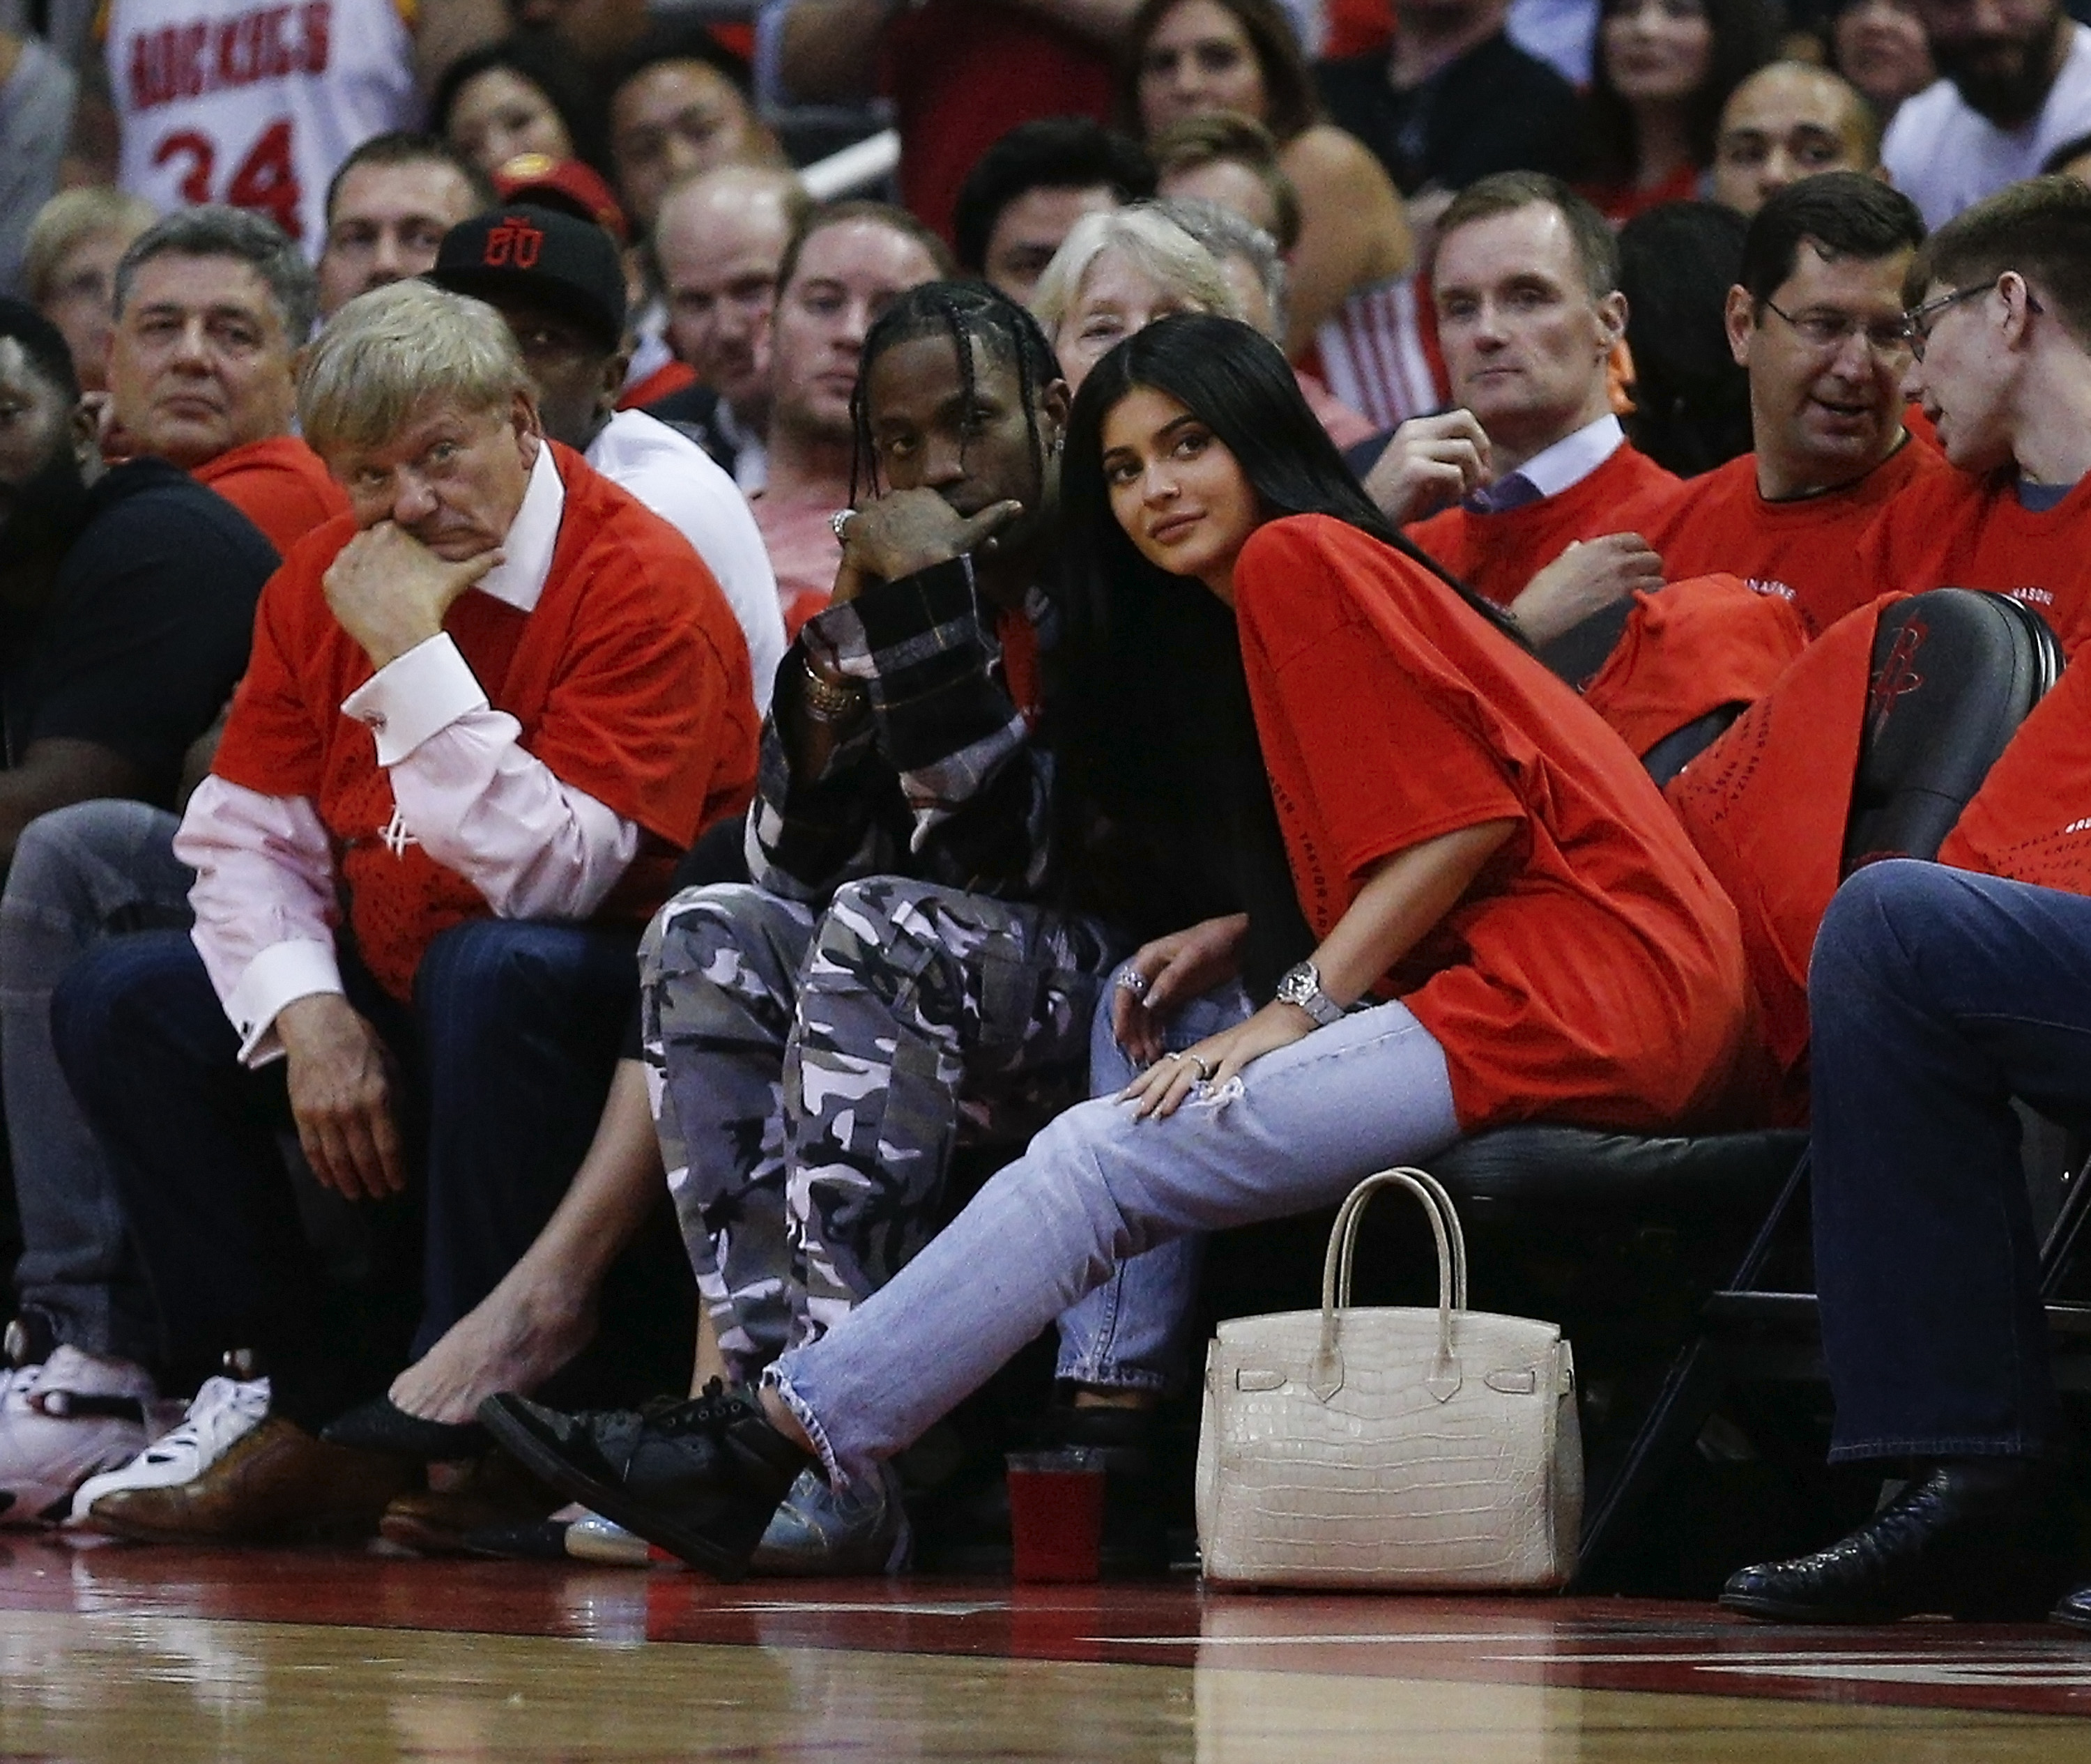 Is marriage is the cards for Kylie Jenner and Travis Scott?